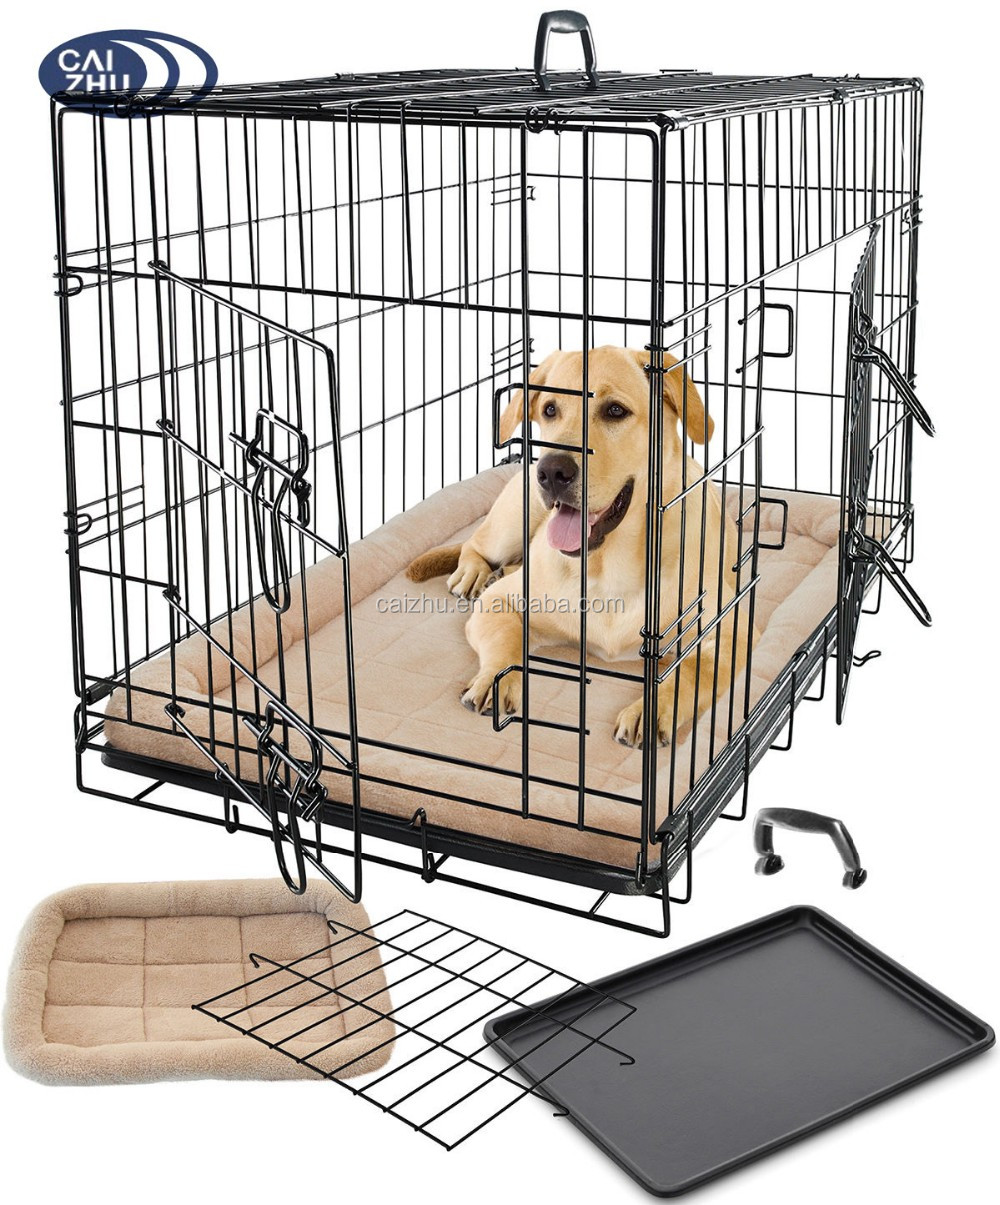 Wholesale Unique Iron Fence Dog Kennel And Metal Wire Dog Cage